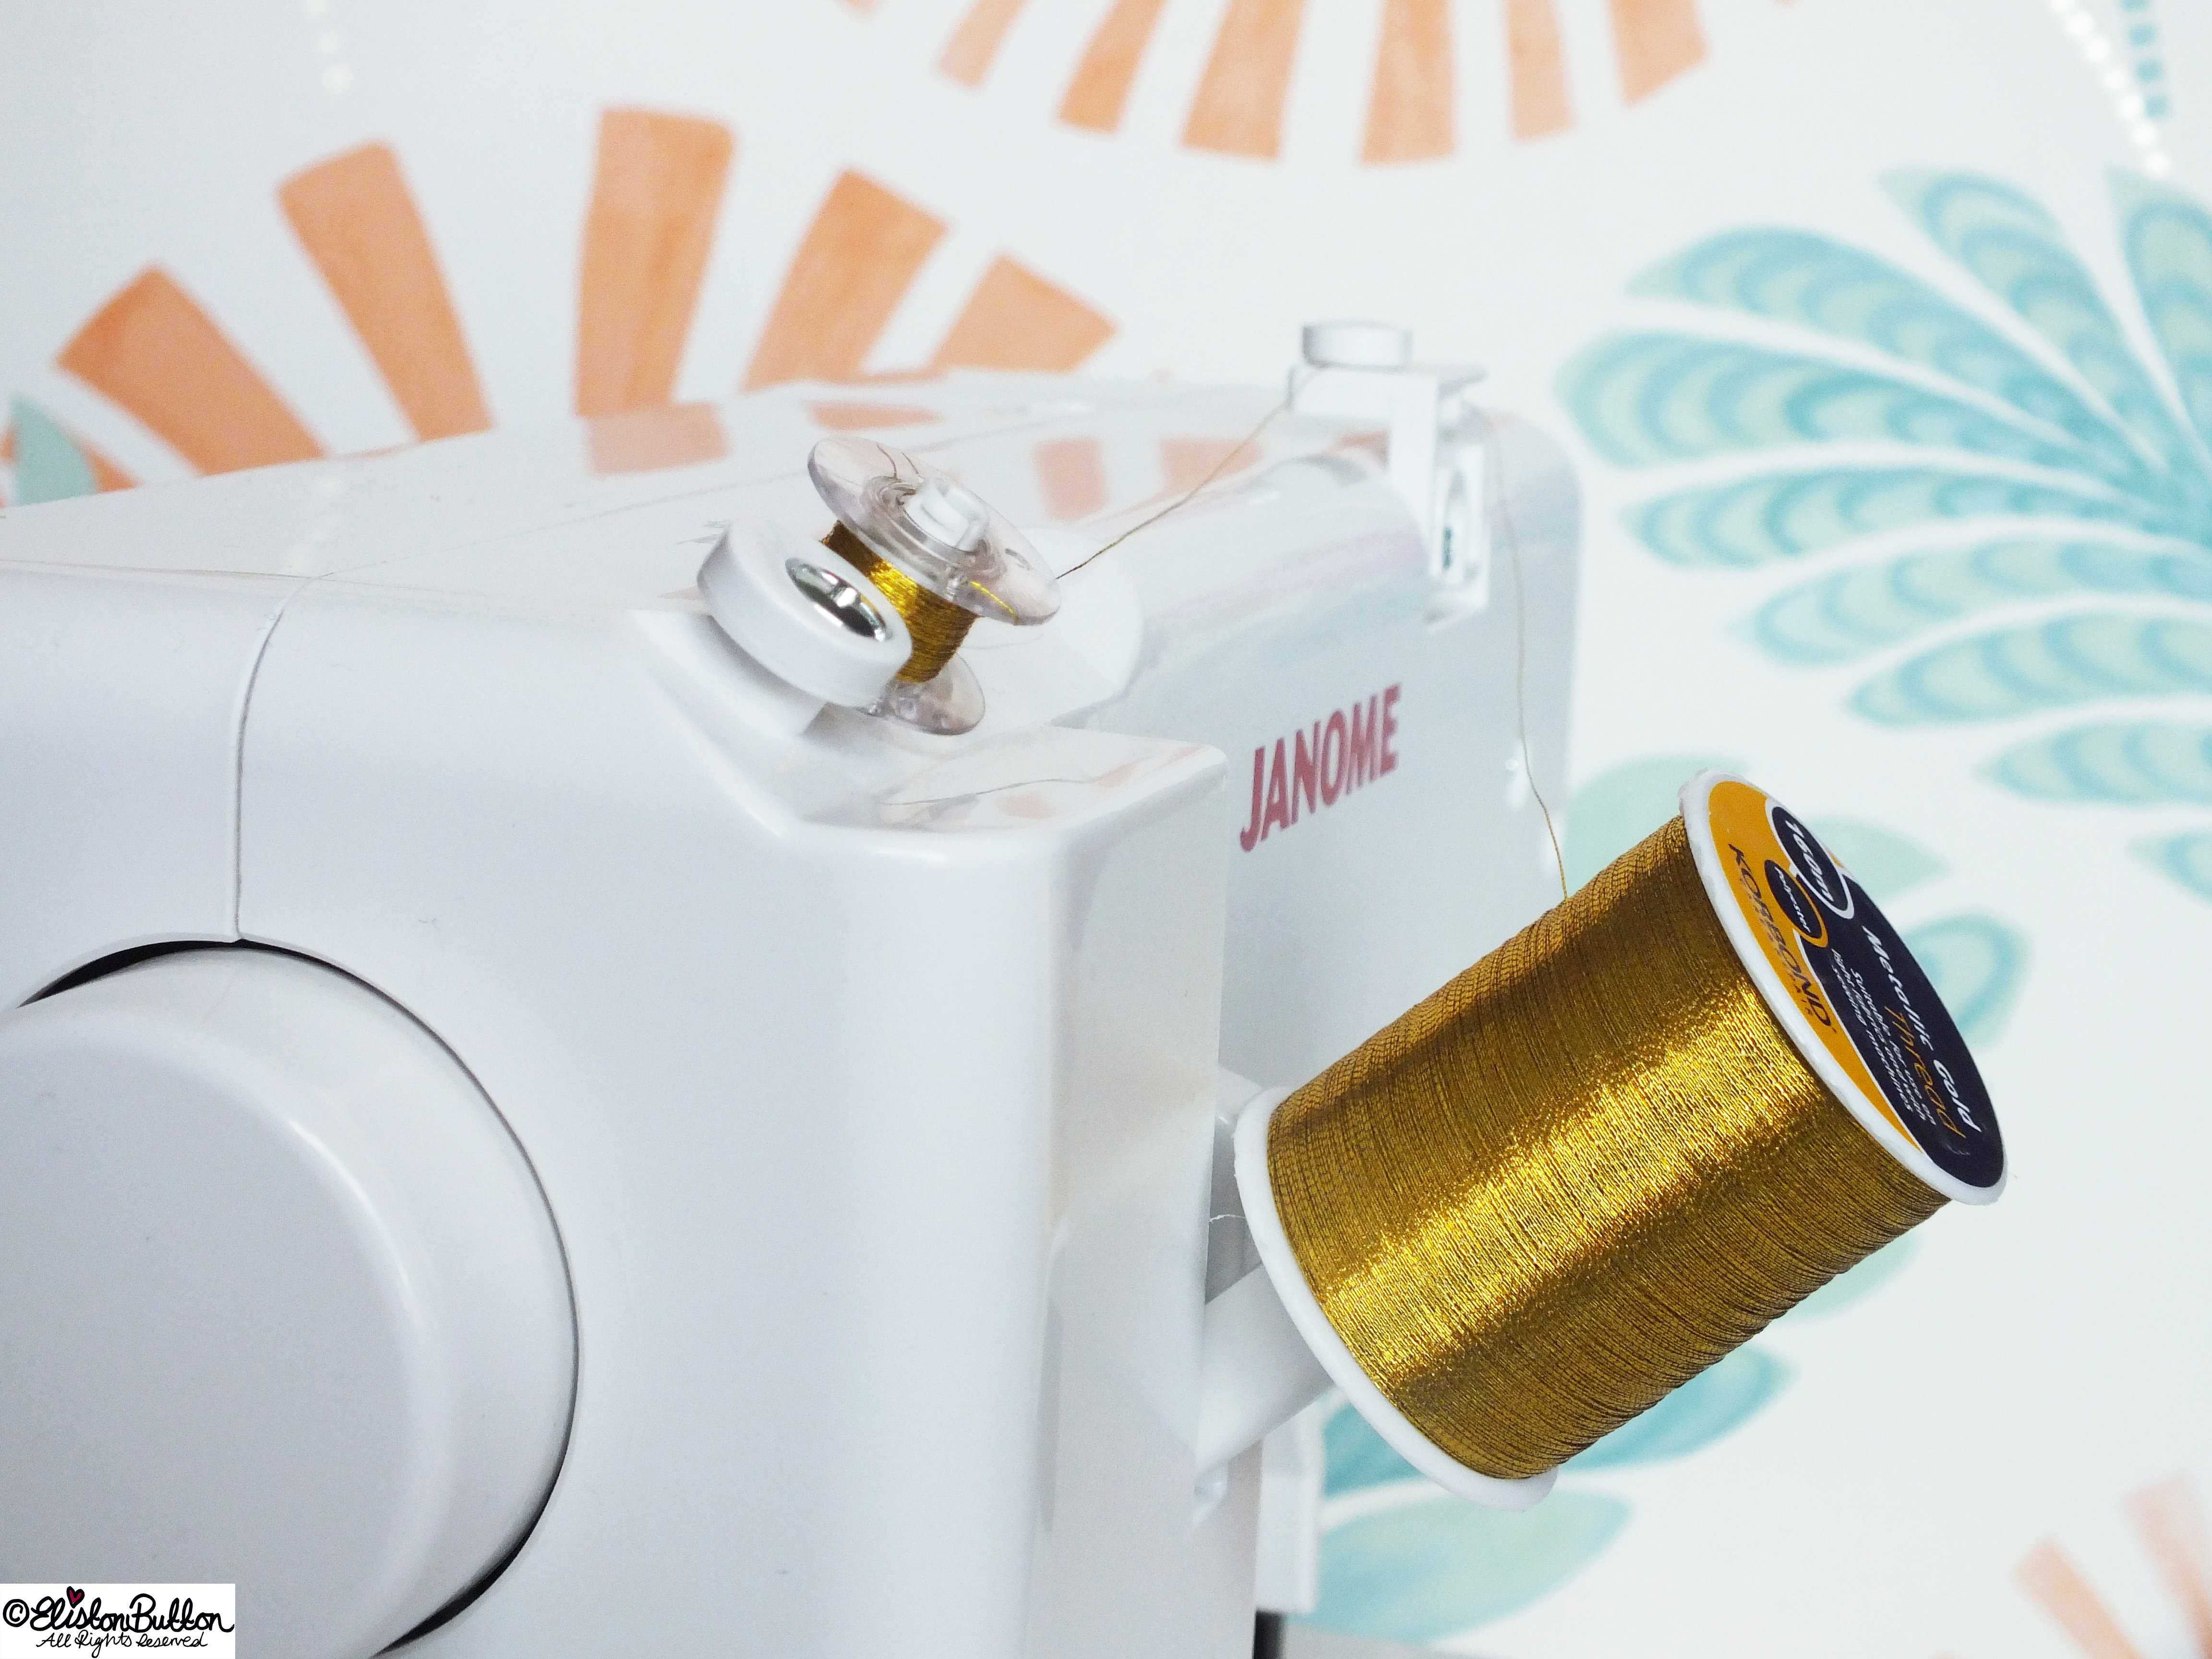 Metallic Gold Cotton Thread all Threaded Up on the Janome 140M Mini Sewing Machine - Sew Good! – This Hobbycraft Sewing Machine at www.elistonbutton.com - Eliston Button - That Crafty Kid – Art, Design, Craft & Adventure.